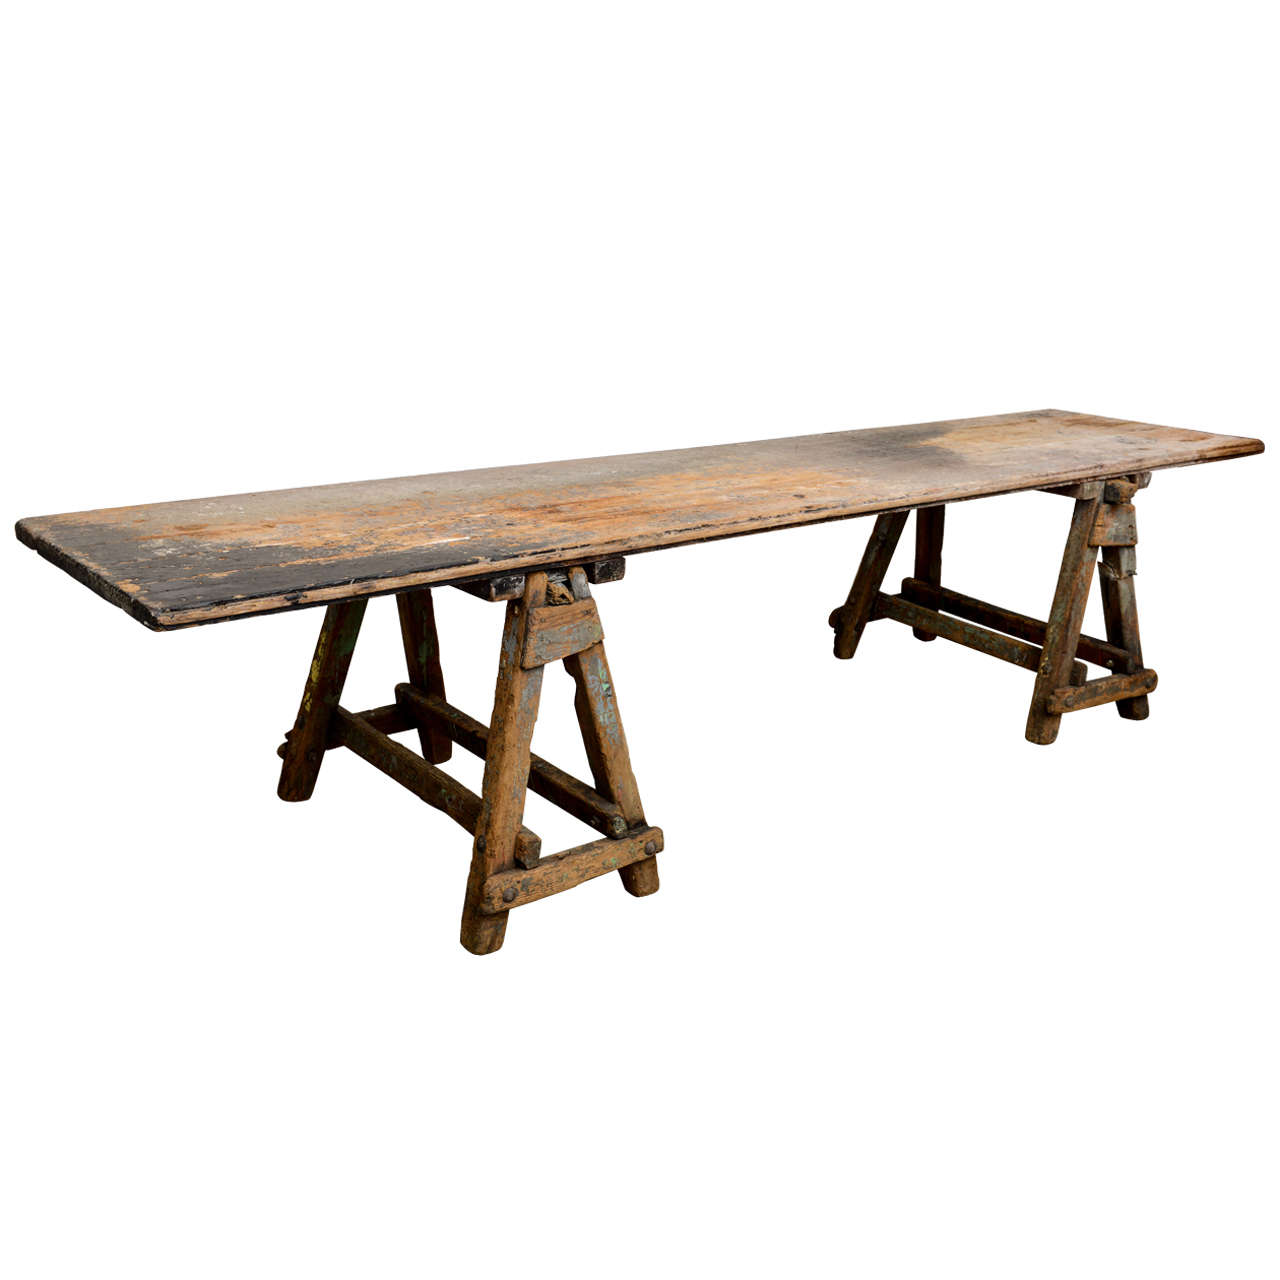 Large Sawbuck Table At 1stdibs. Full resolution  image, nominally Width 1280 Height 1280 pixels, image with #28190E.